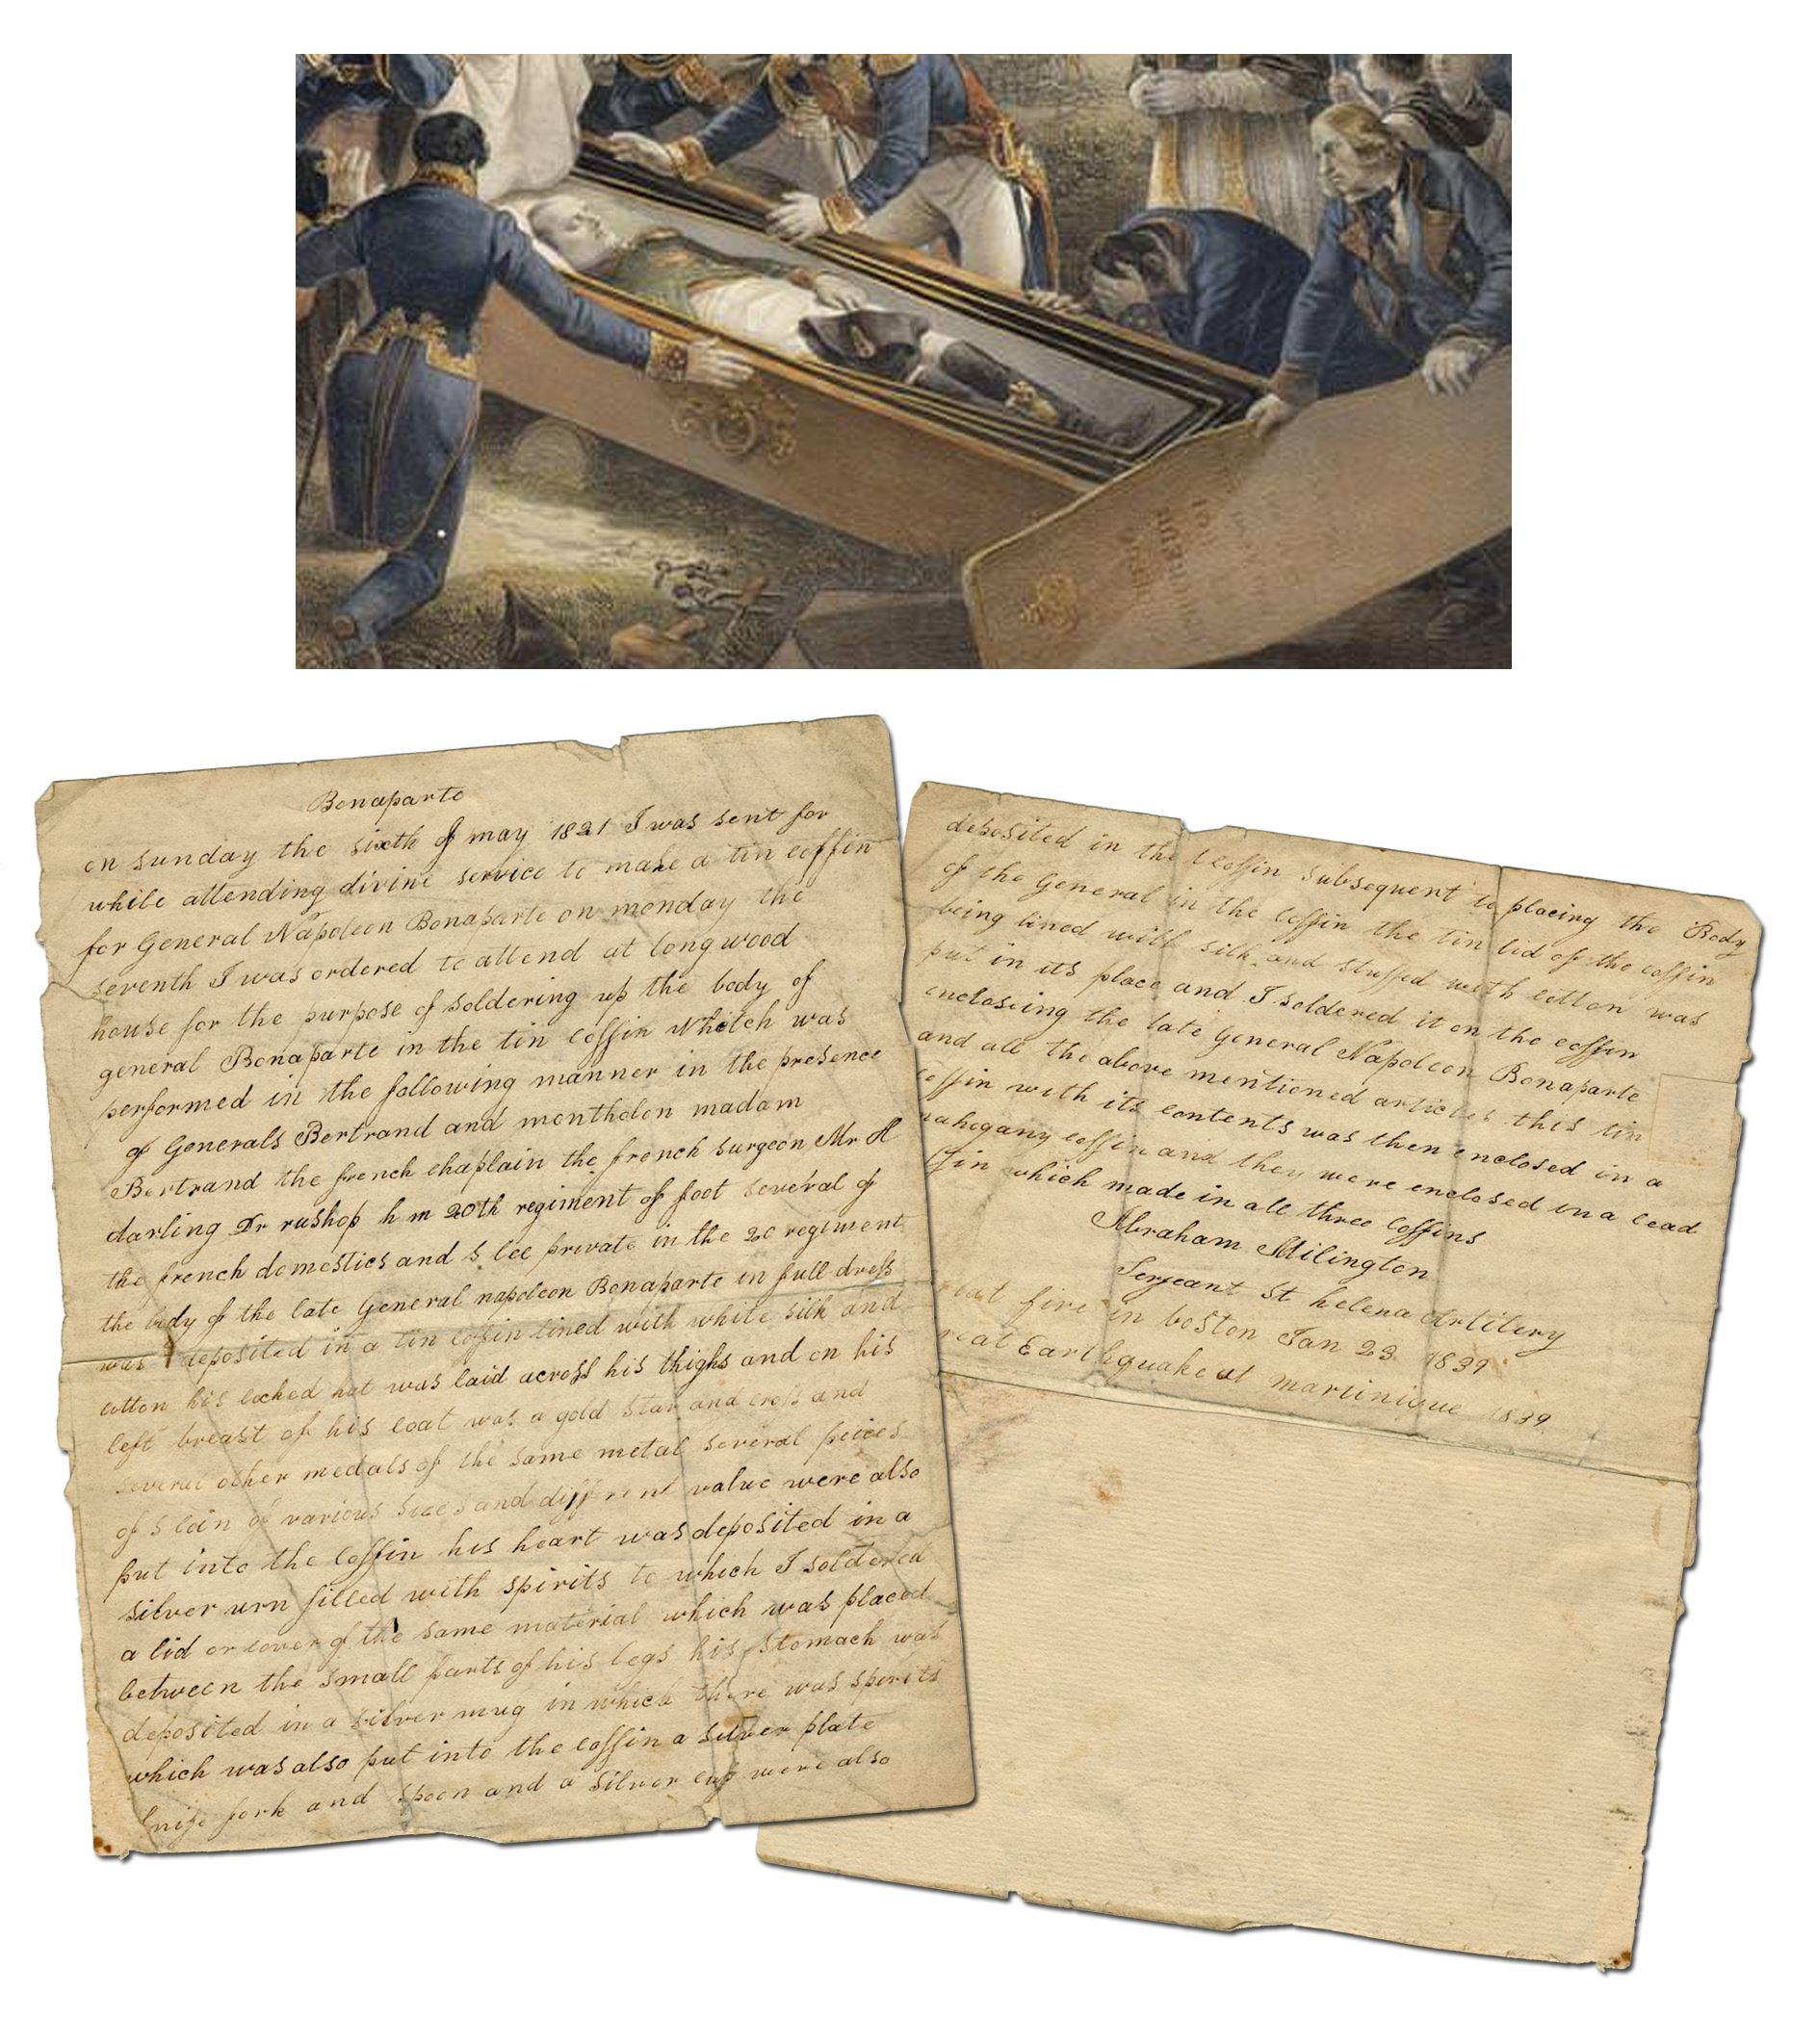 Napoleon's Coffin Maker: Eyewitness British Account of Sealing Up the Emperor's Body on St. Helena, Ex-Nicholson Napoleon Collection